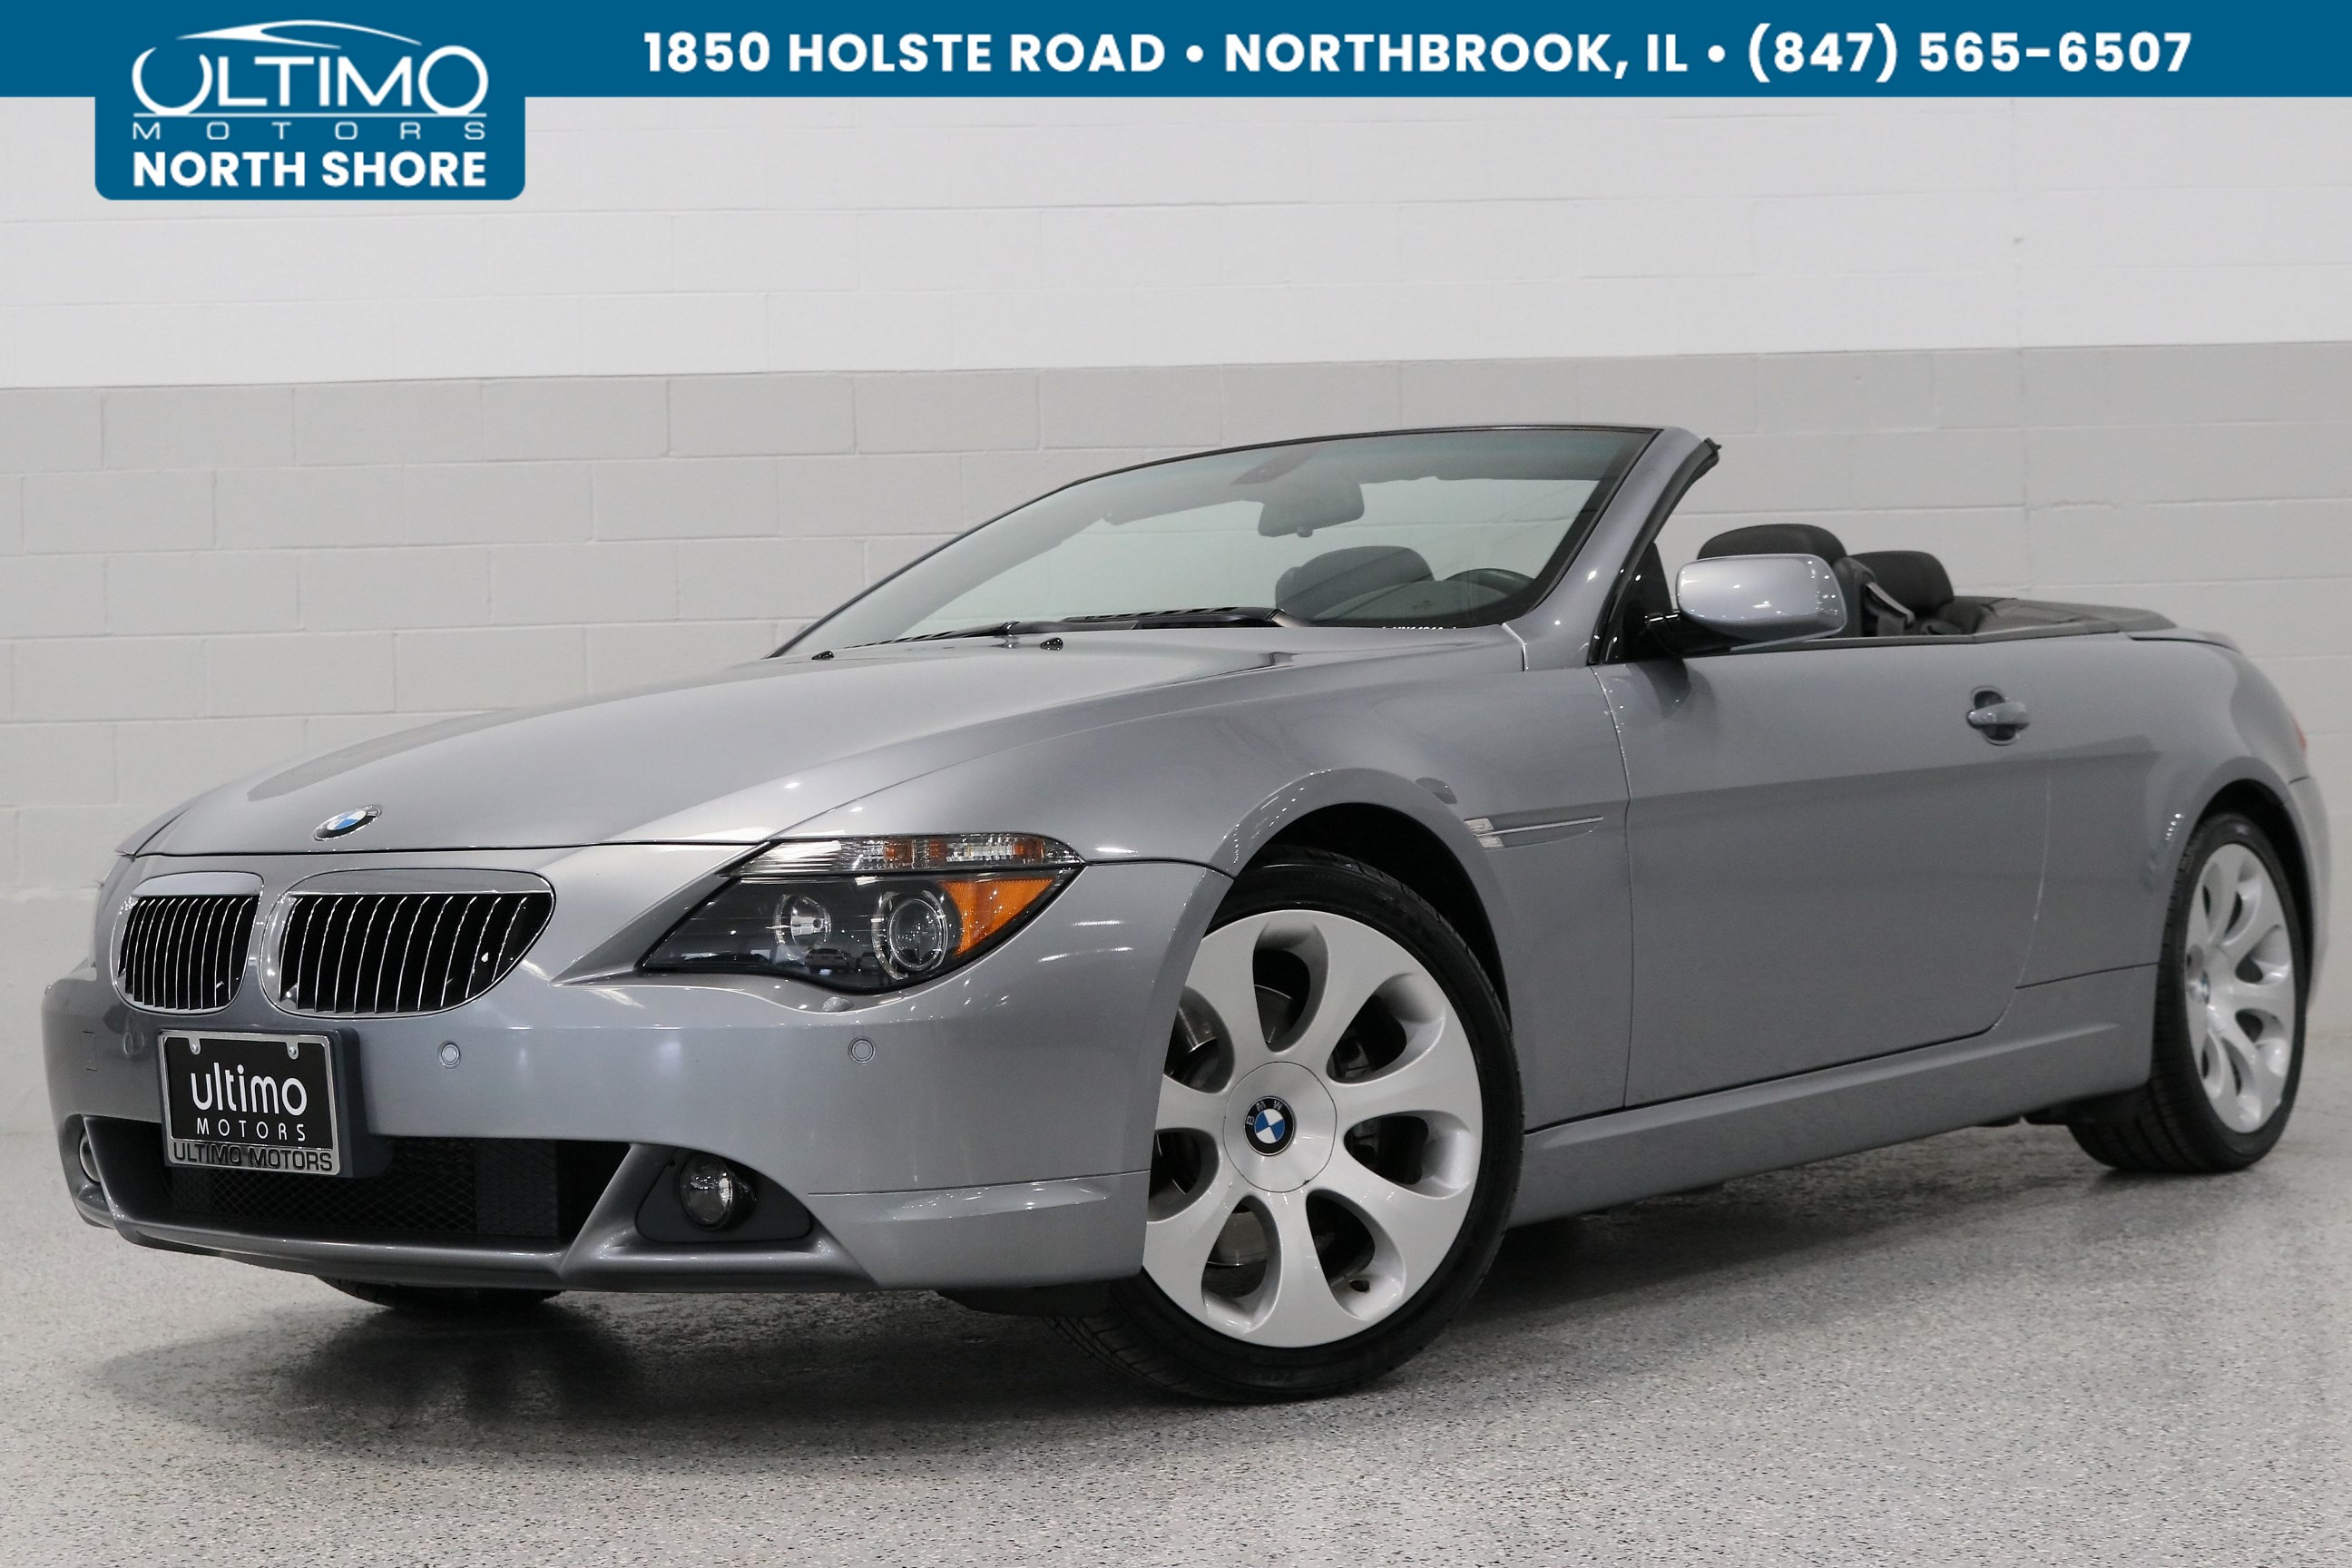 Pre-Owned 2005 BMW 6 Series 645Ci, Cold Weather, Sport Package, Premium Sound